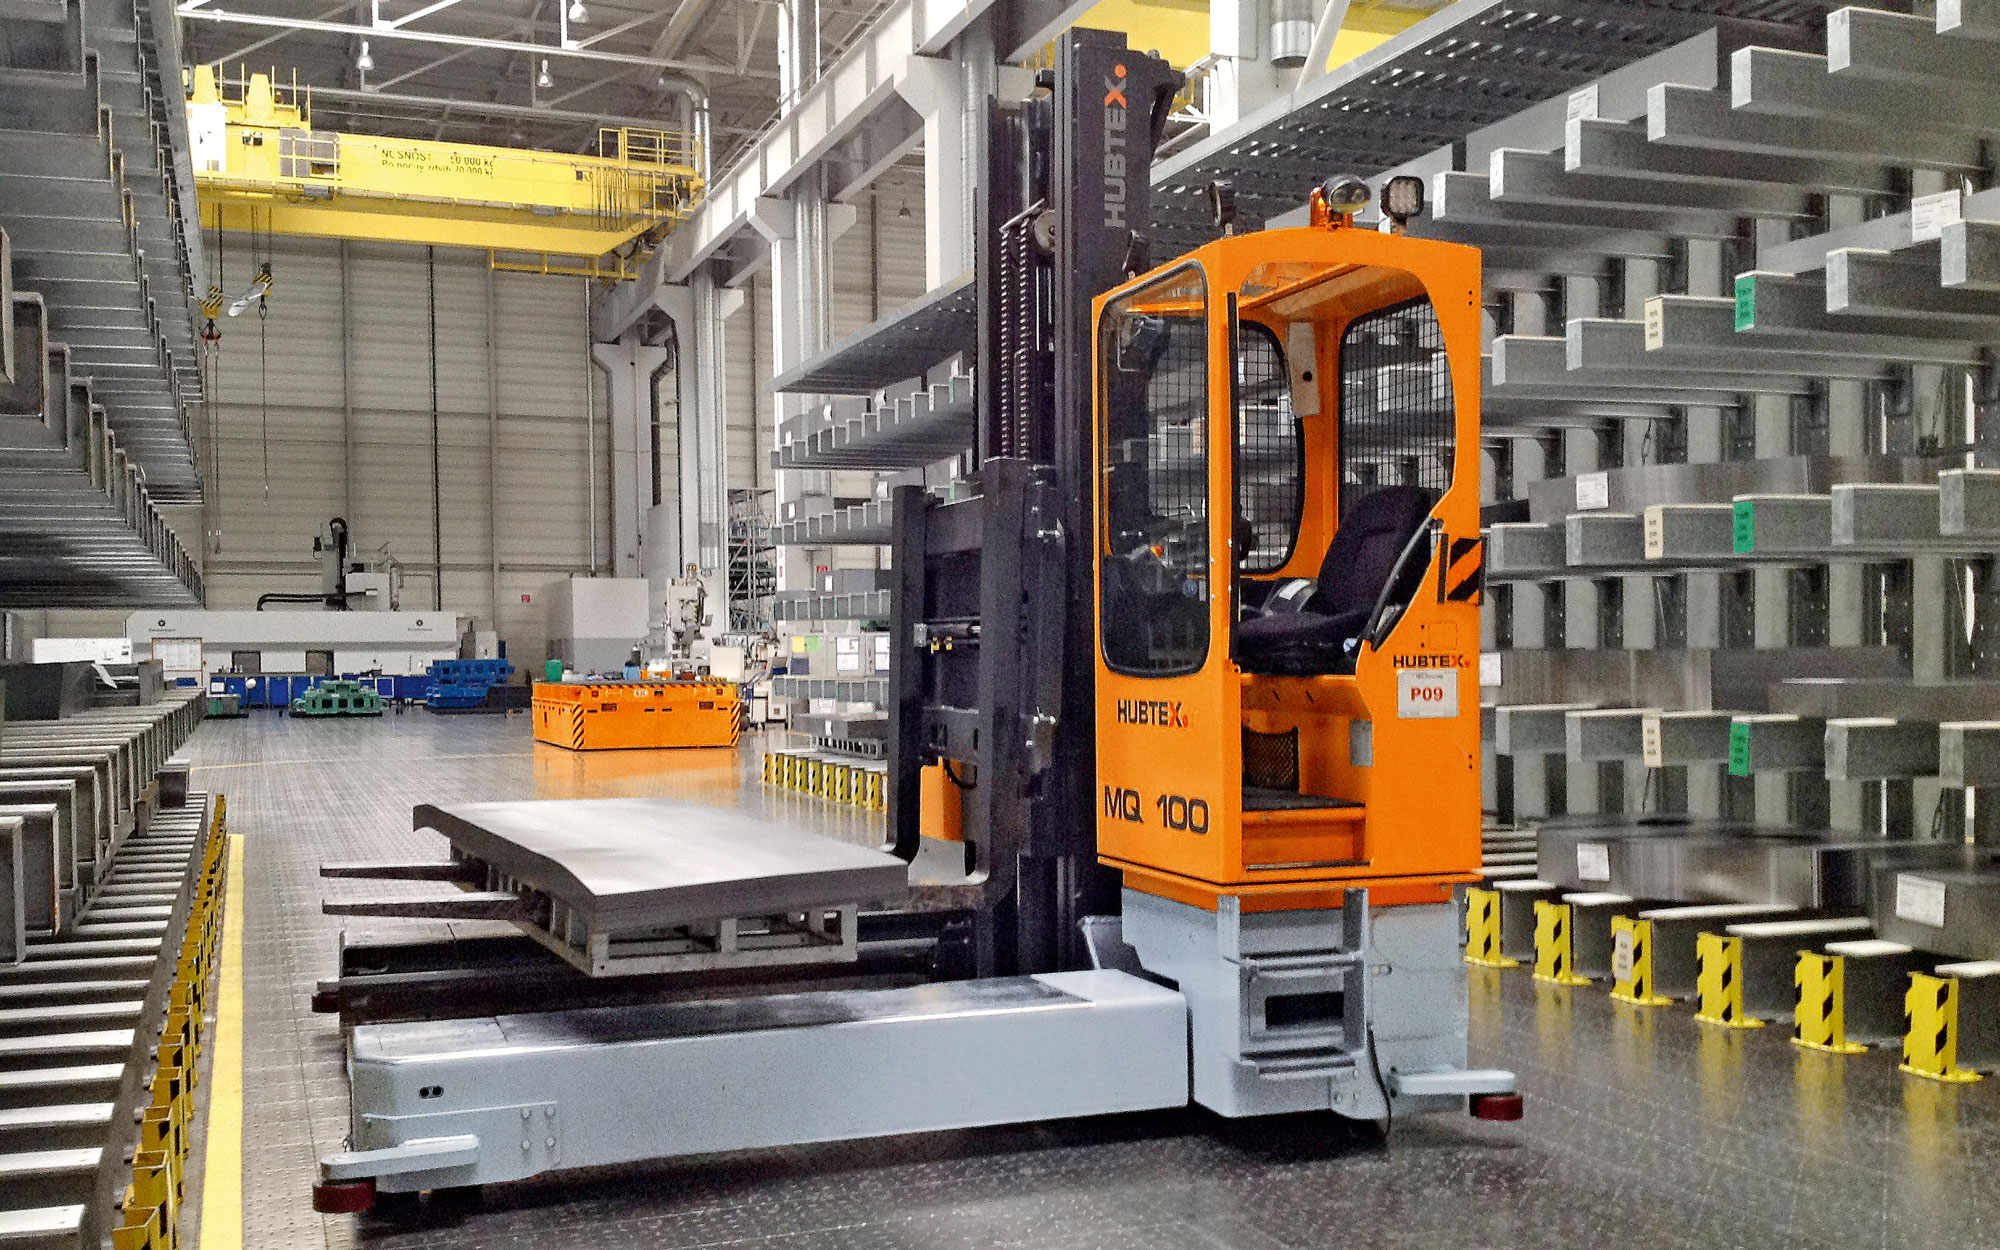 Hubtex MQ 100 Electric Multidirectional Sideloader placing product